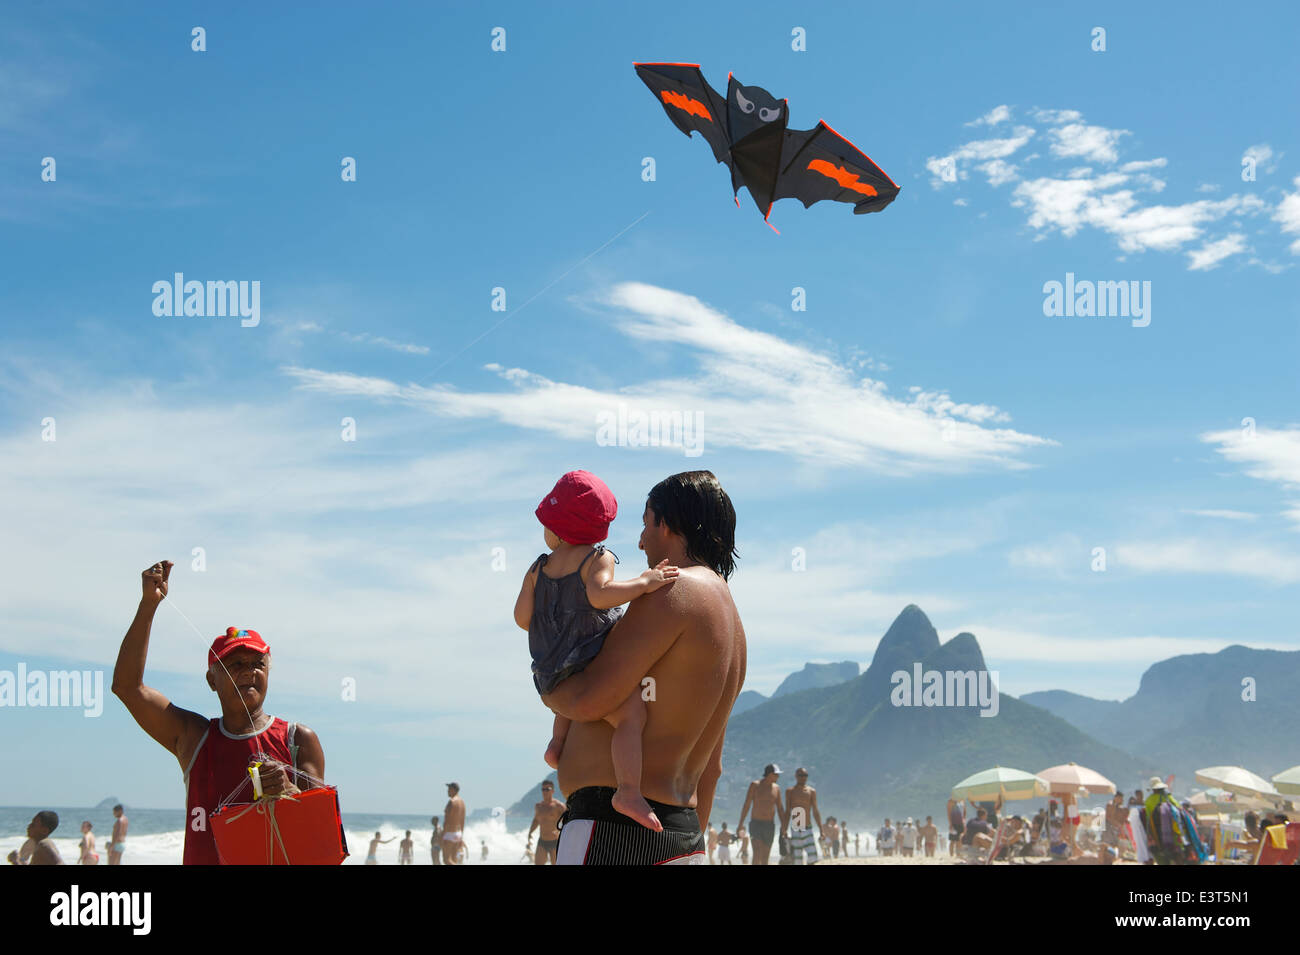 RIO DE JANEIRO, BRAZIL - MARCH 10, 2013: A beach vendor selling kits displays his merchandise for a father and child - Stock Image